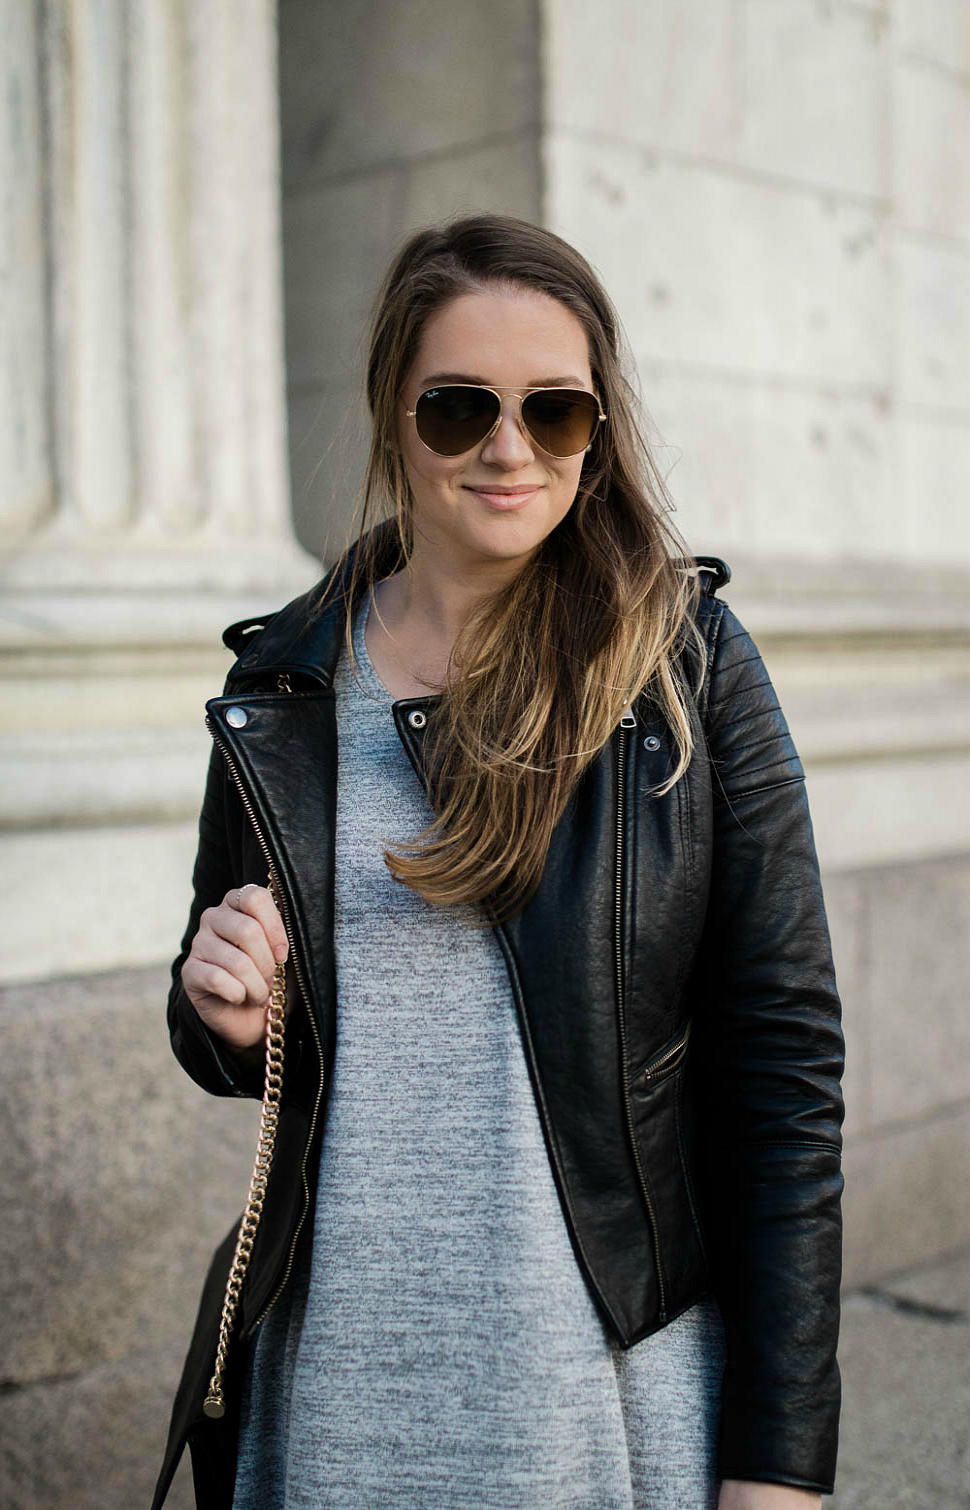 leather-jacket-over-the-knee-boots-ray-ban-canadian-blogger-style-fashion-outfit-rosecitystyleguide-3